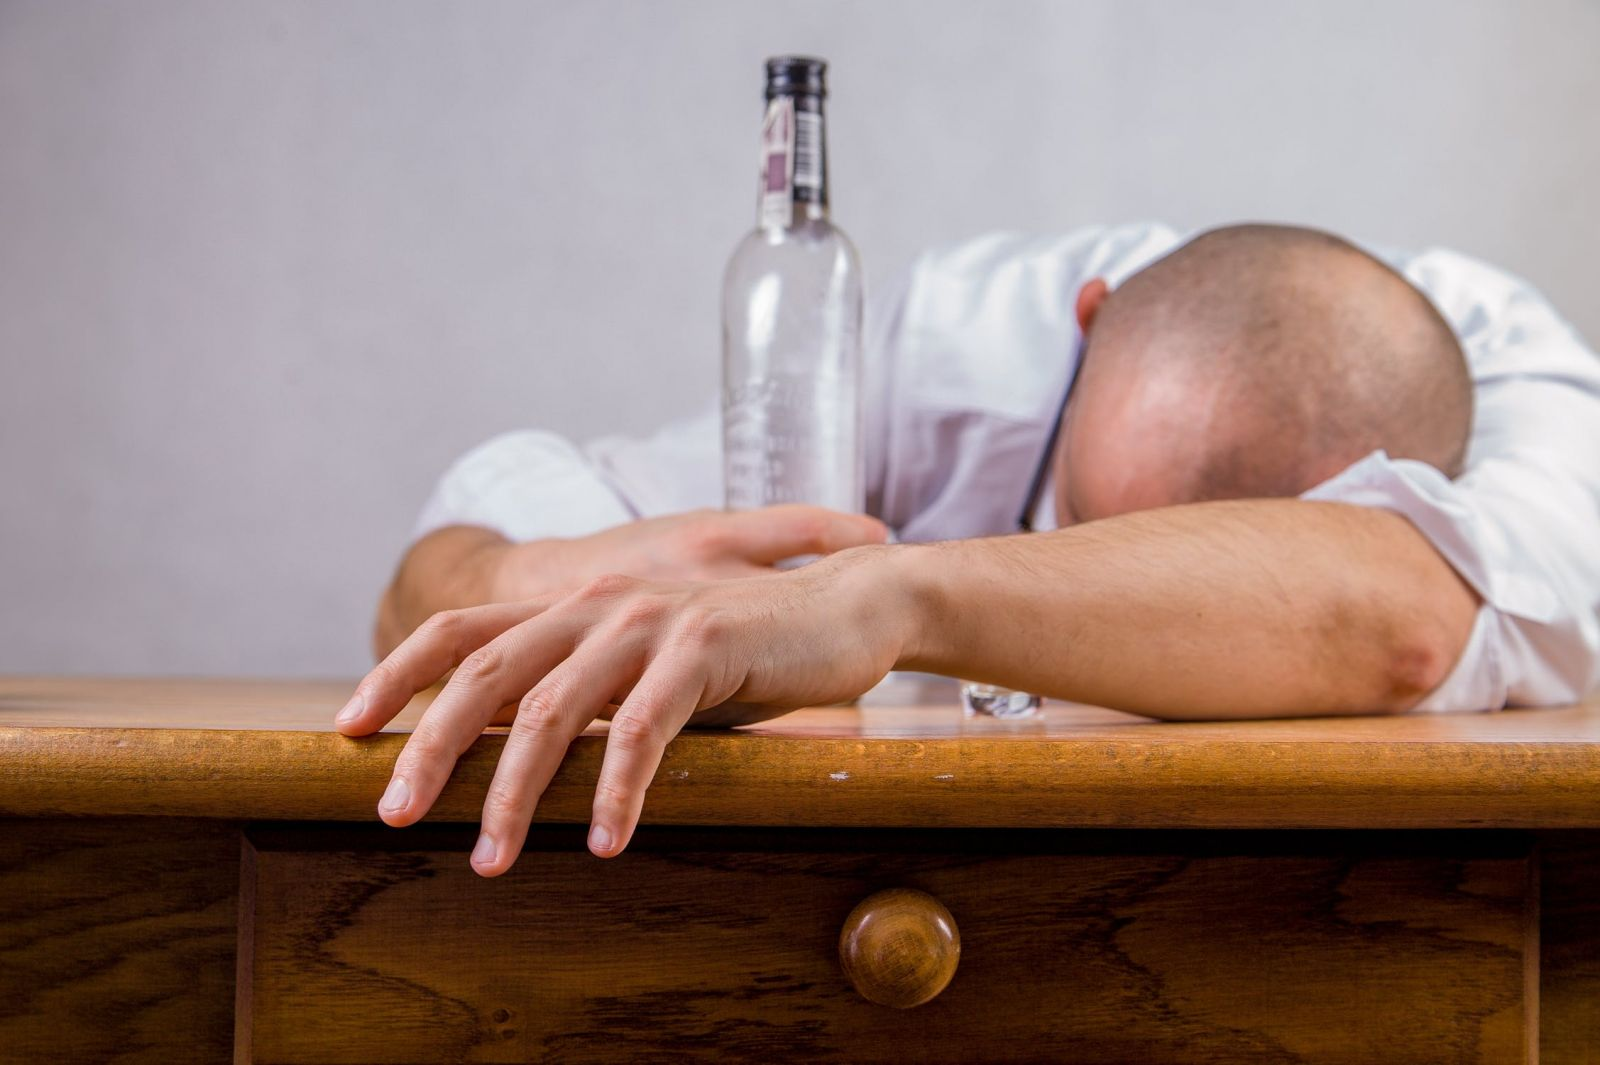 effects of alcohol on eye health